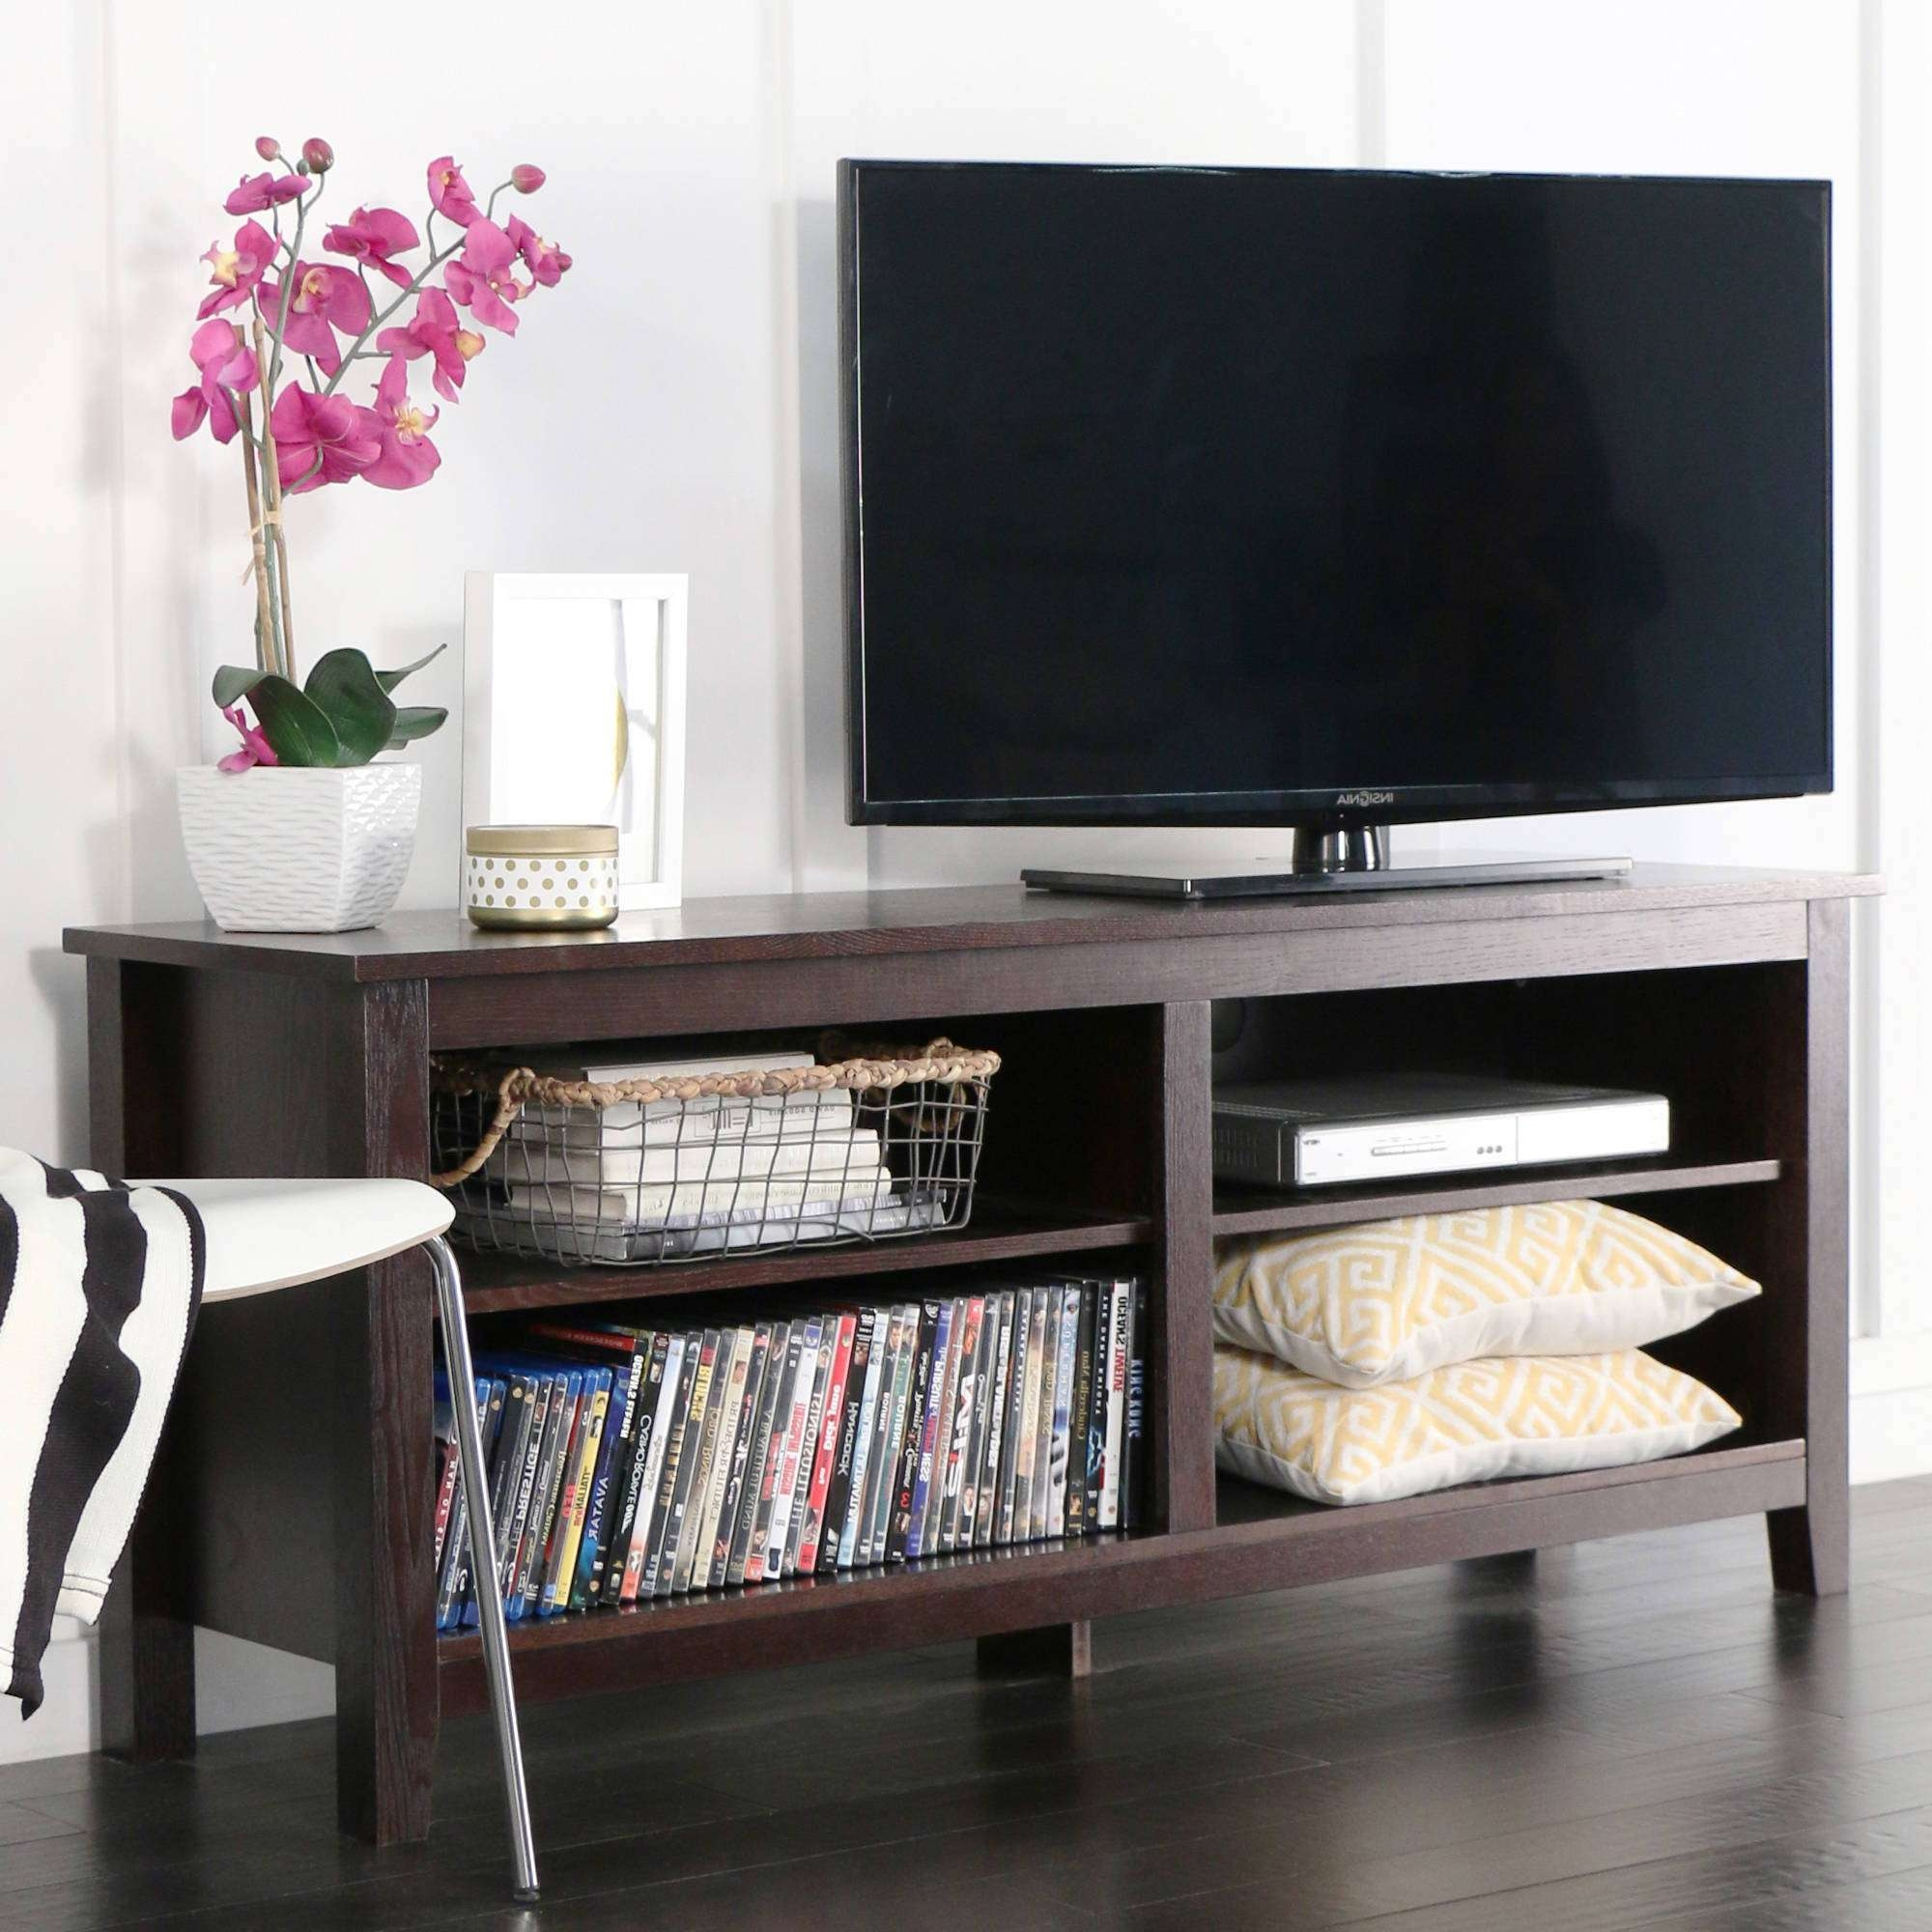 Tv Stand : 34 Stupendous Long Wooden Tv Stand Photo Inspirations Intended For Long Wood Tv Stands (View 15 of 15)